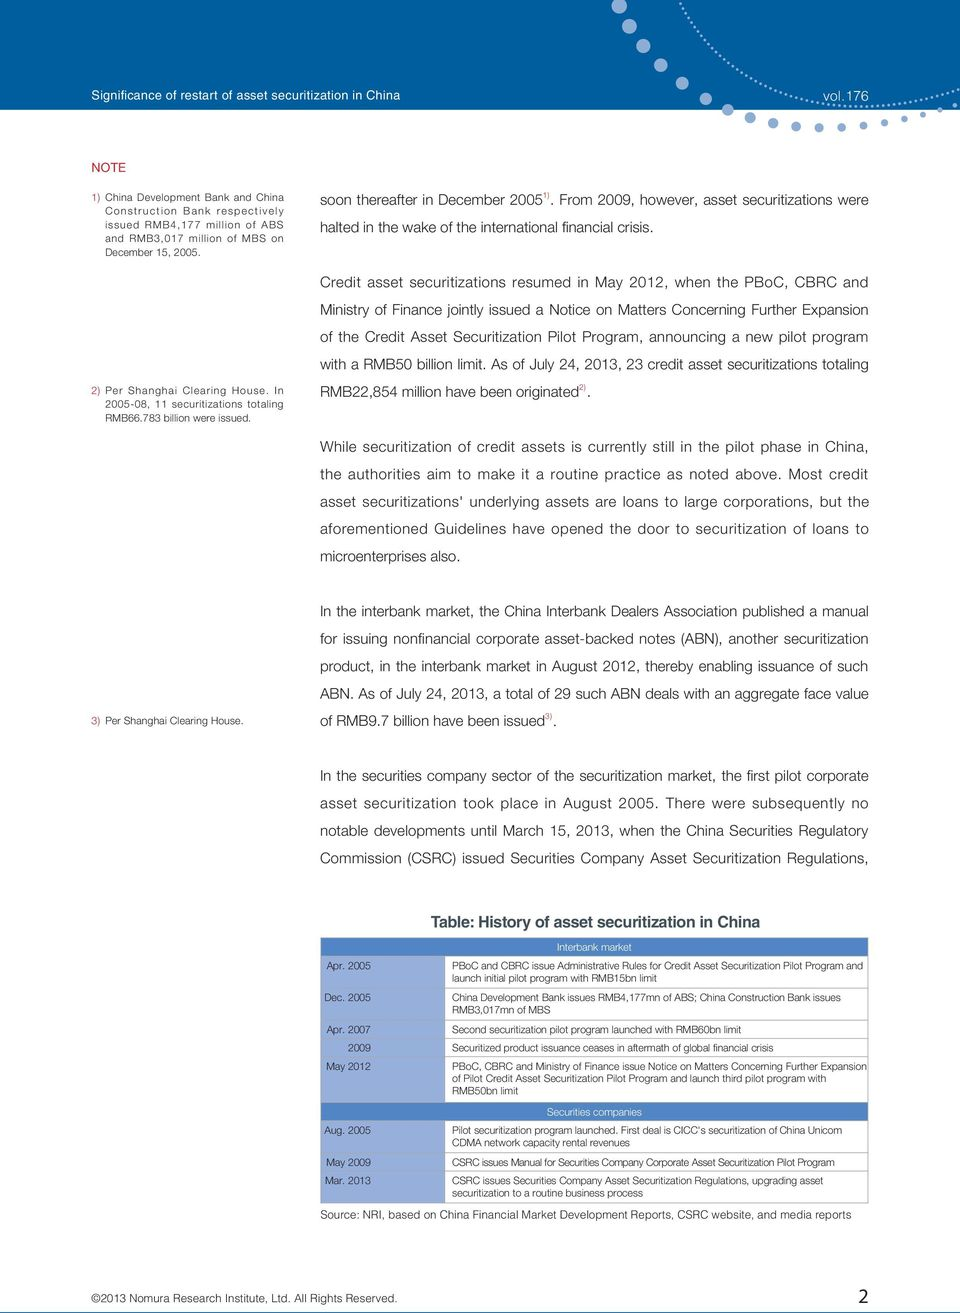 Credit asset securitizations resumed in May 2012, when the PBoC, CBRC and Ministry of Finance jointly issued a Notice on Matters Concerning Further Expansion of the Credit Asset Securitization Pilot